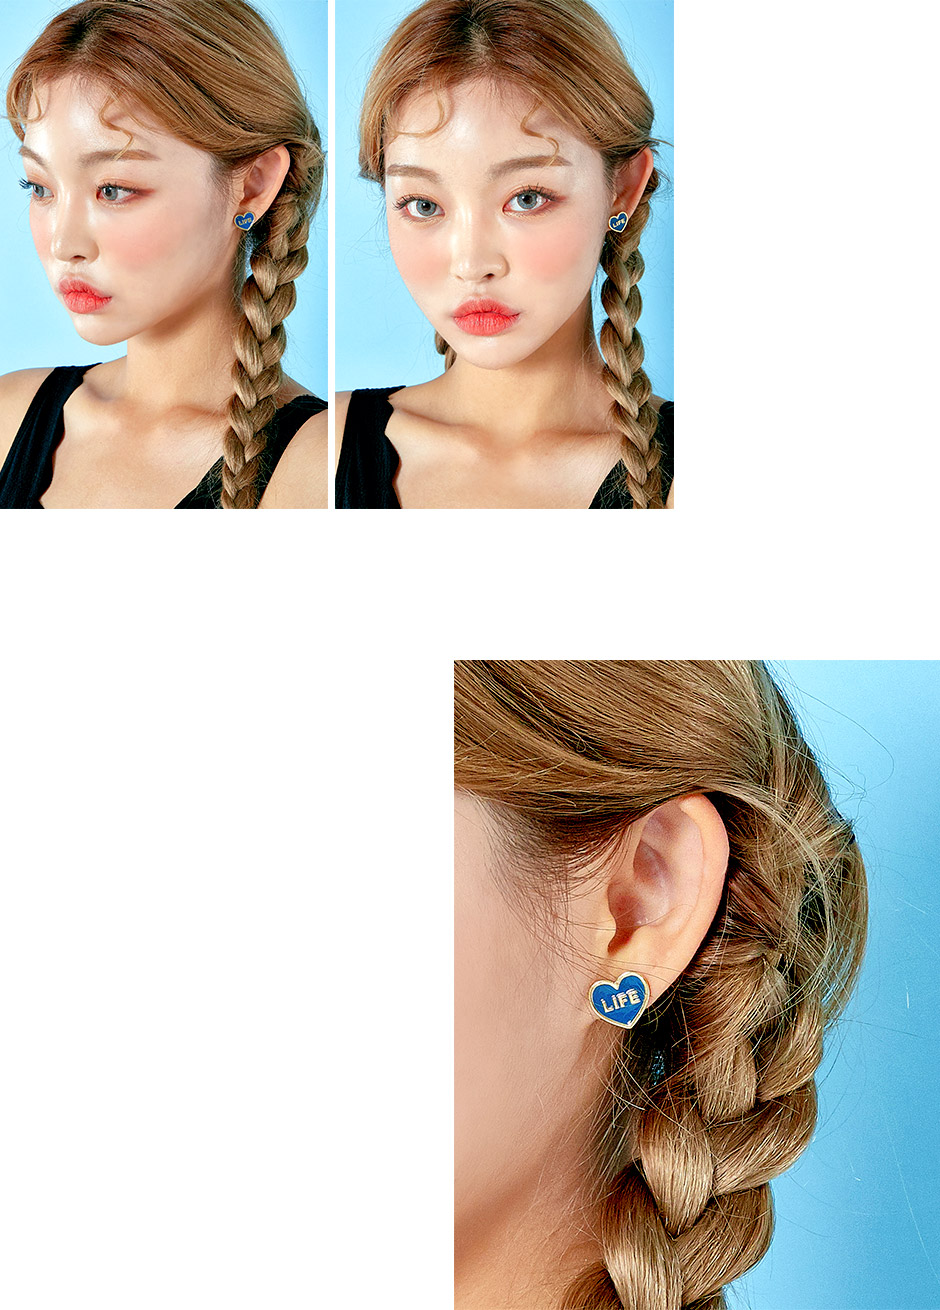 //cdn.nhanh.vn/cdn/store/29770/psCT/20180927/9208154/_CHU__Outdone_My_Cuteness_Earrings_(2).jpg